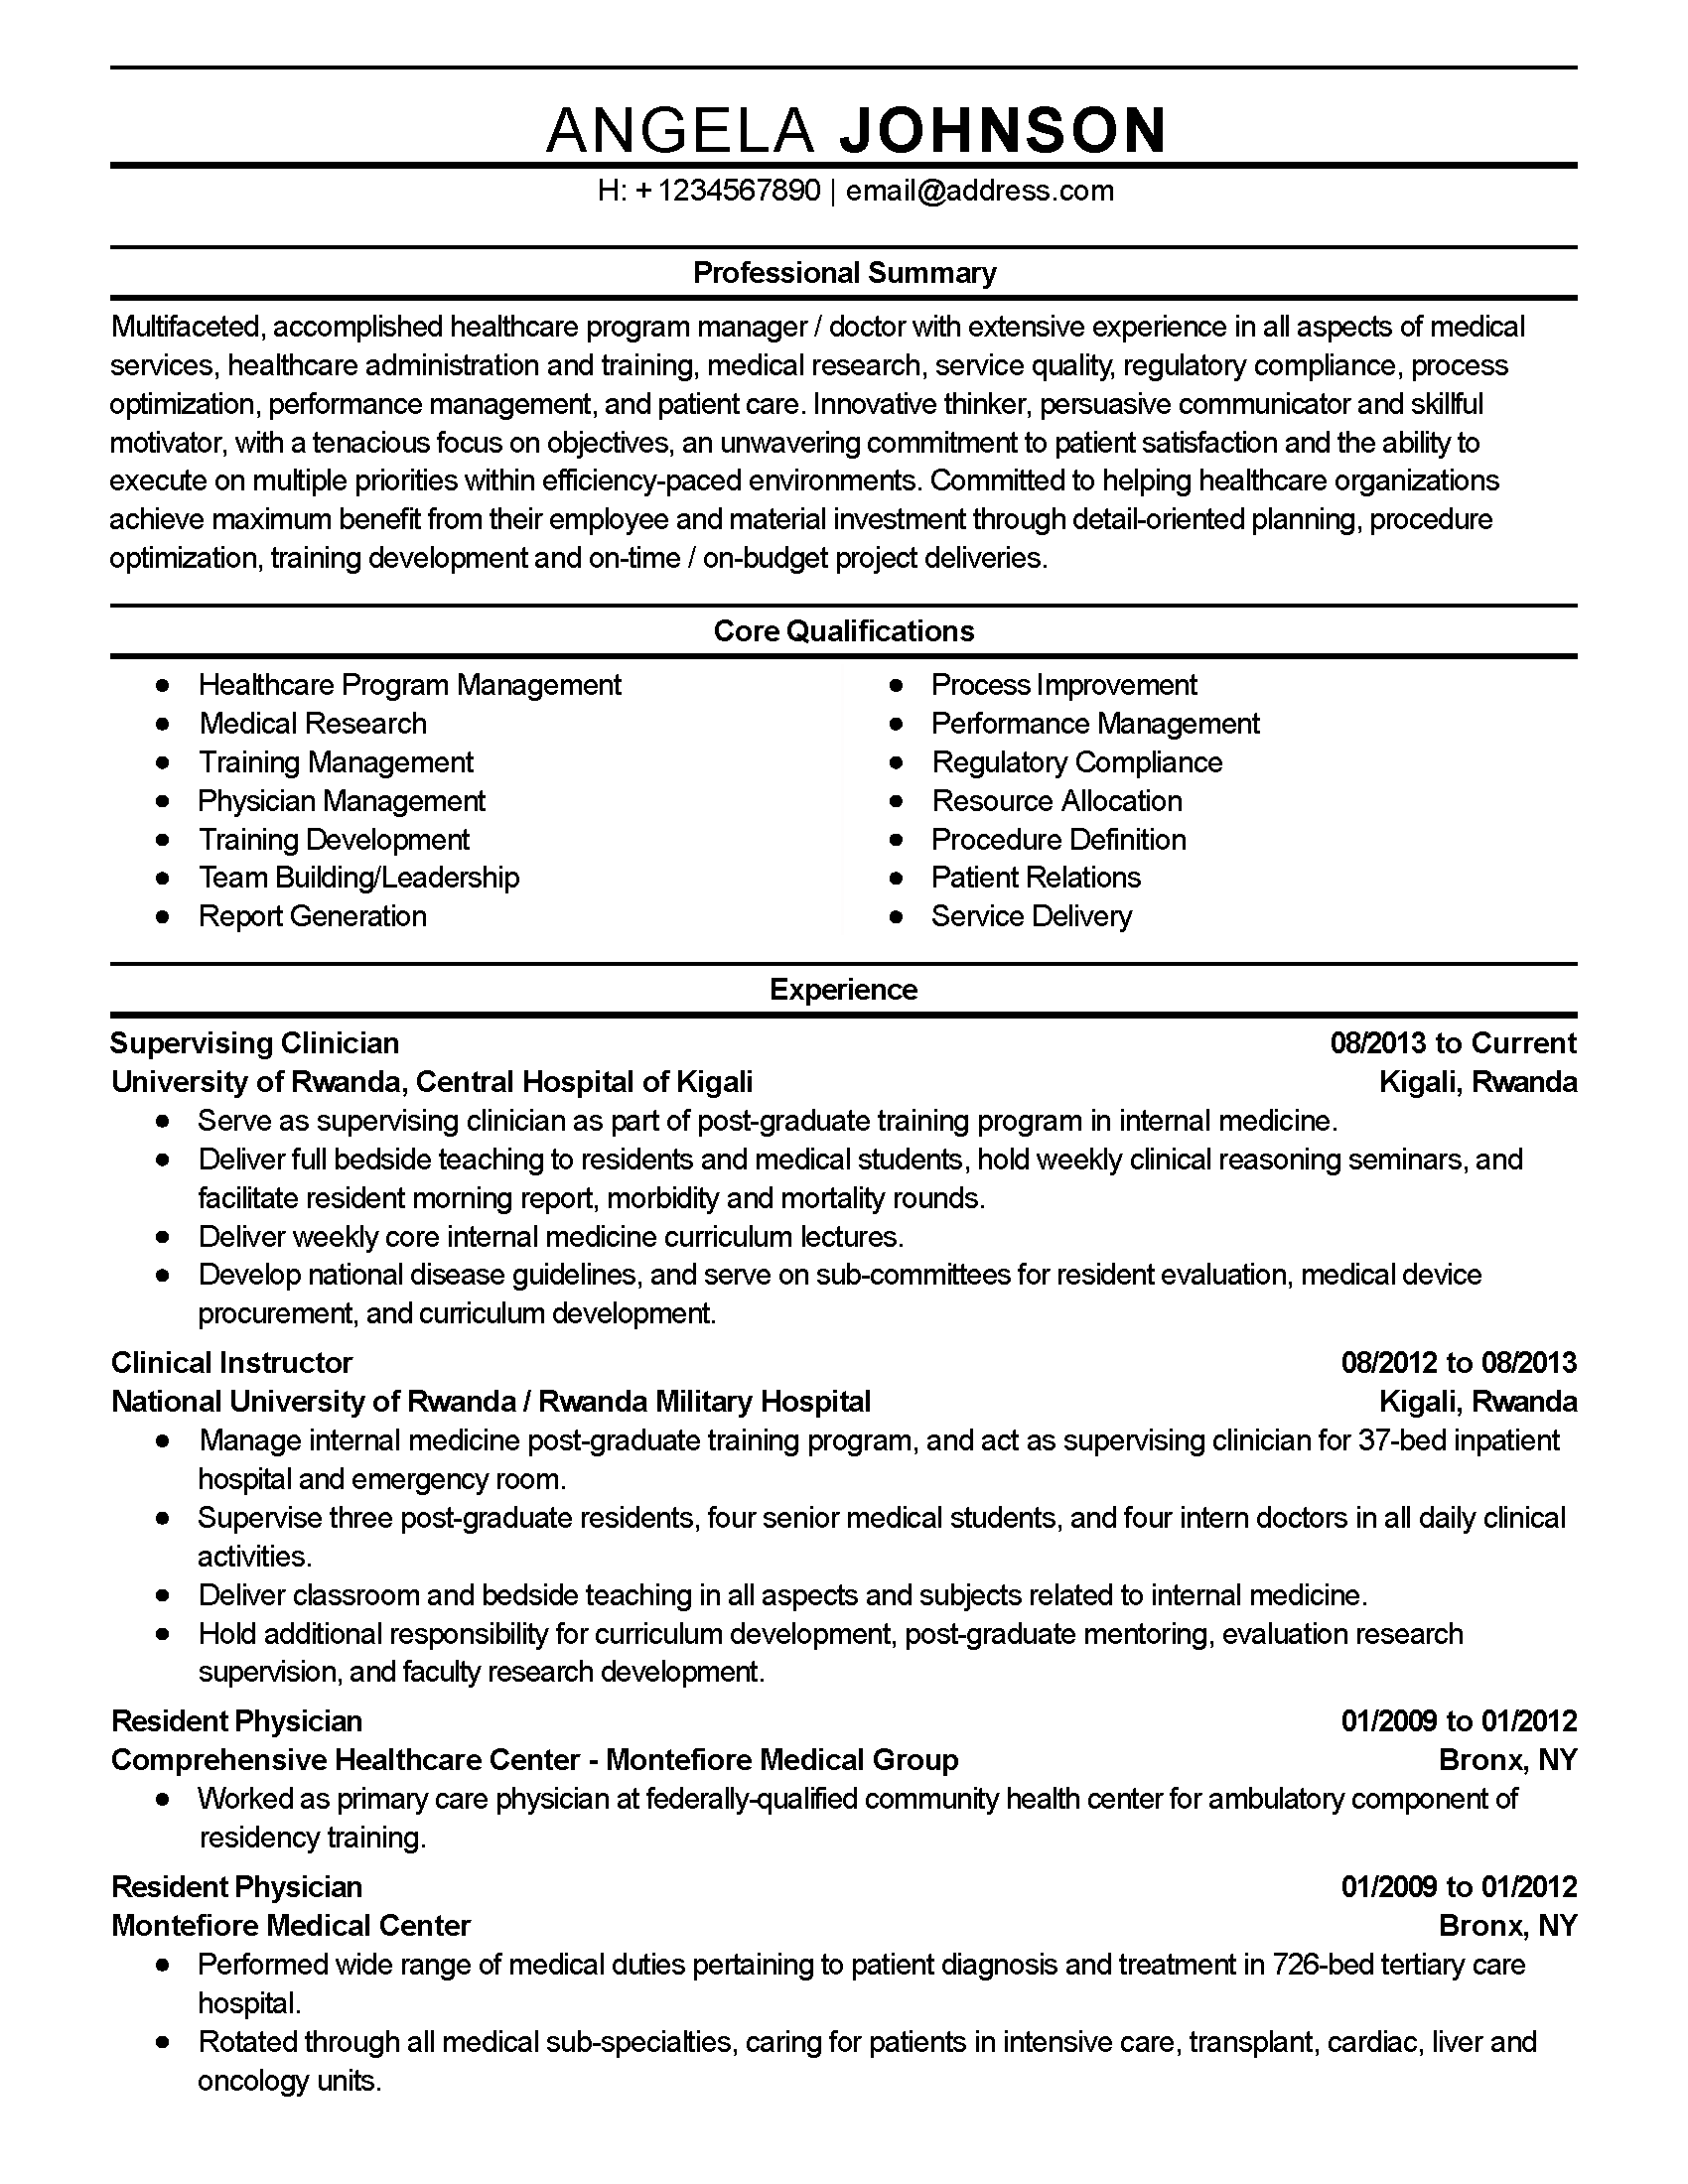 Resume Templates: Healthcare Program Manager